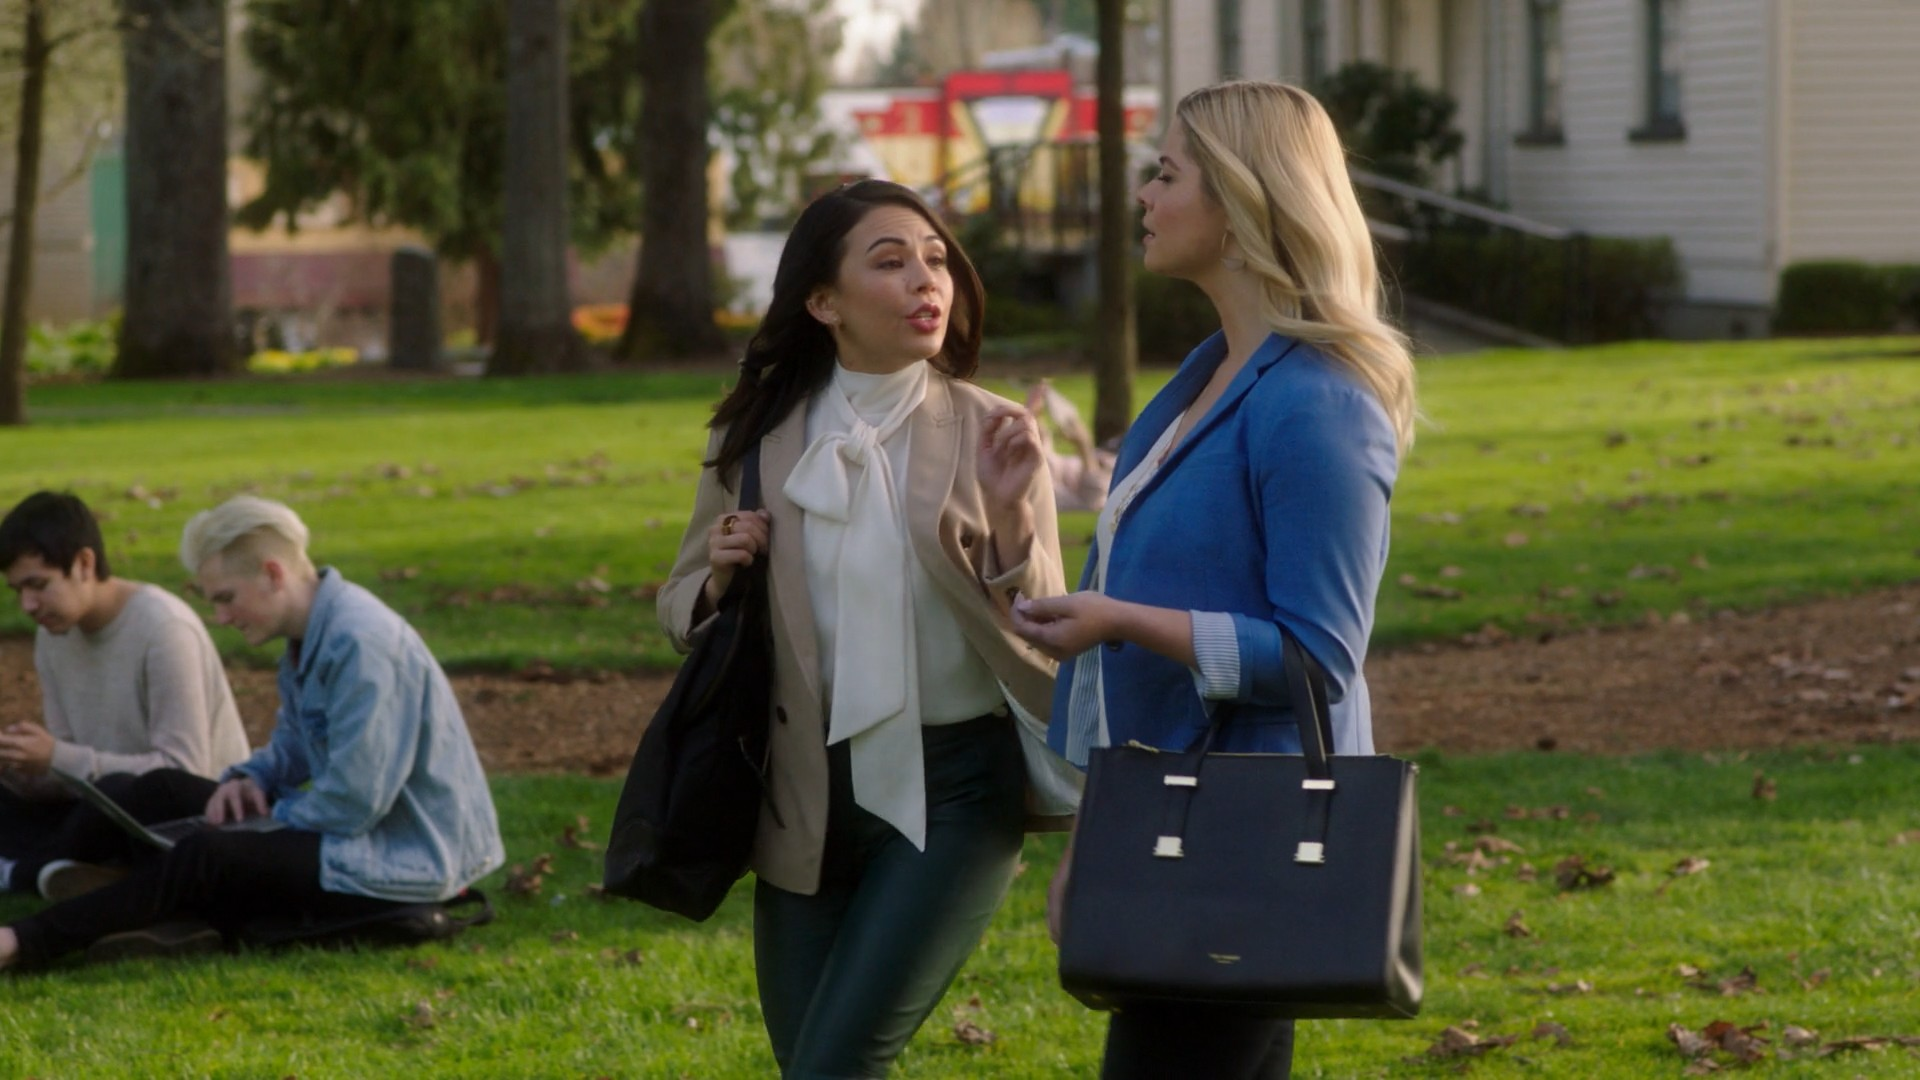 Pretty Little Liars: The Perfectionists- S01E01 (Series Premiere, Pilot)Sasha Pieterse, Janel Parrish, Sofia Carson, Sydney Park